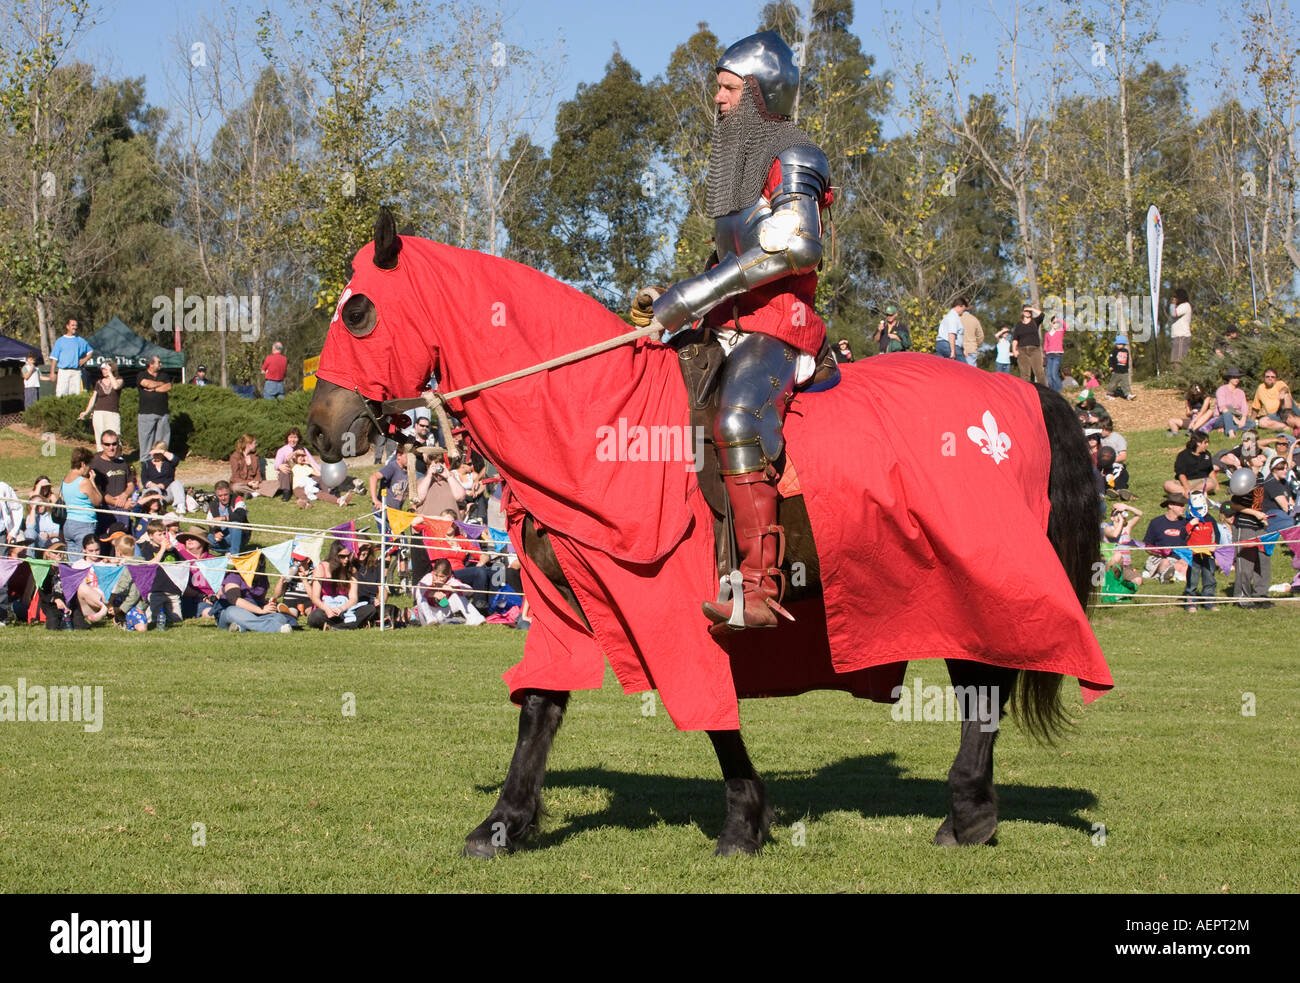 Medieval Jouster In Red Costume Armour And Helmet On Horseback Stock Photo Alamy